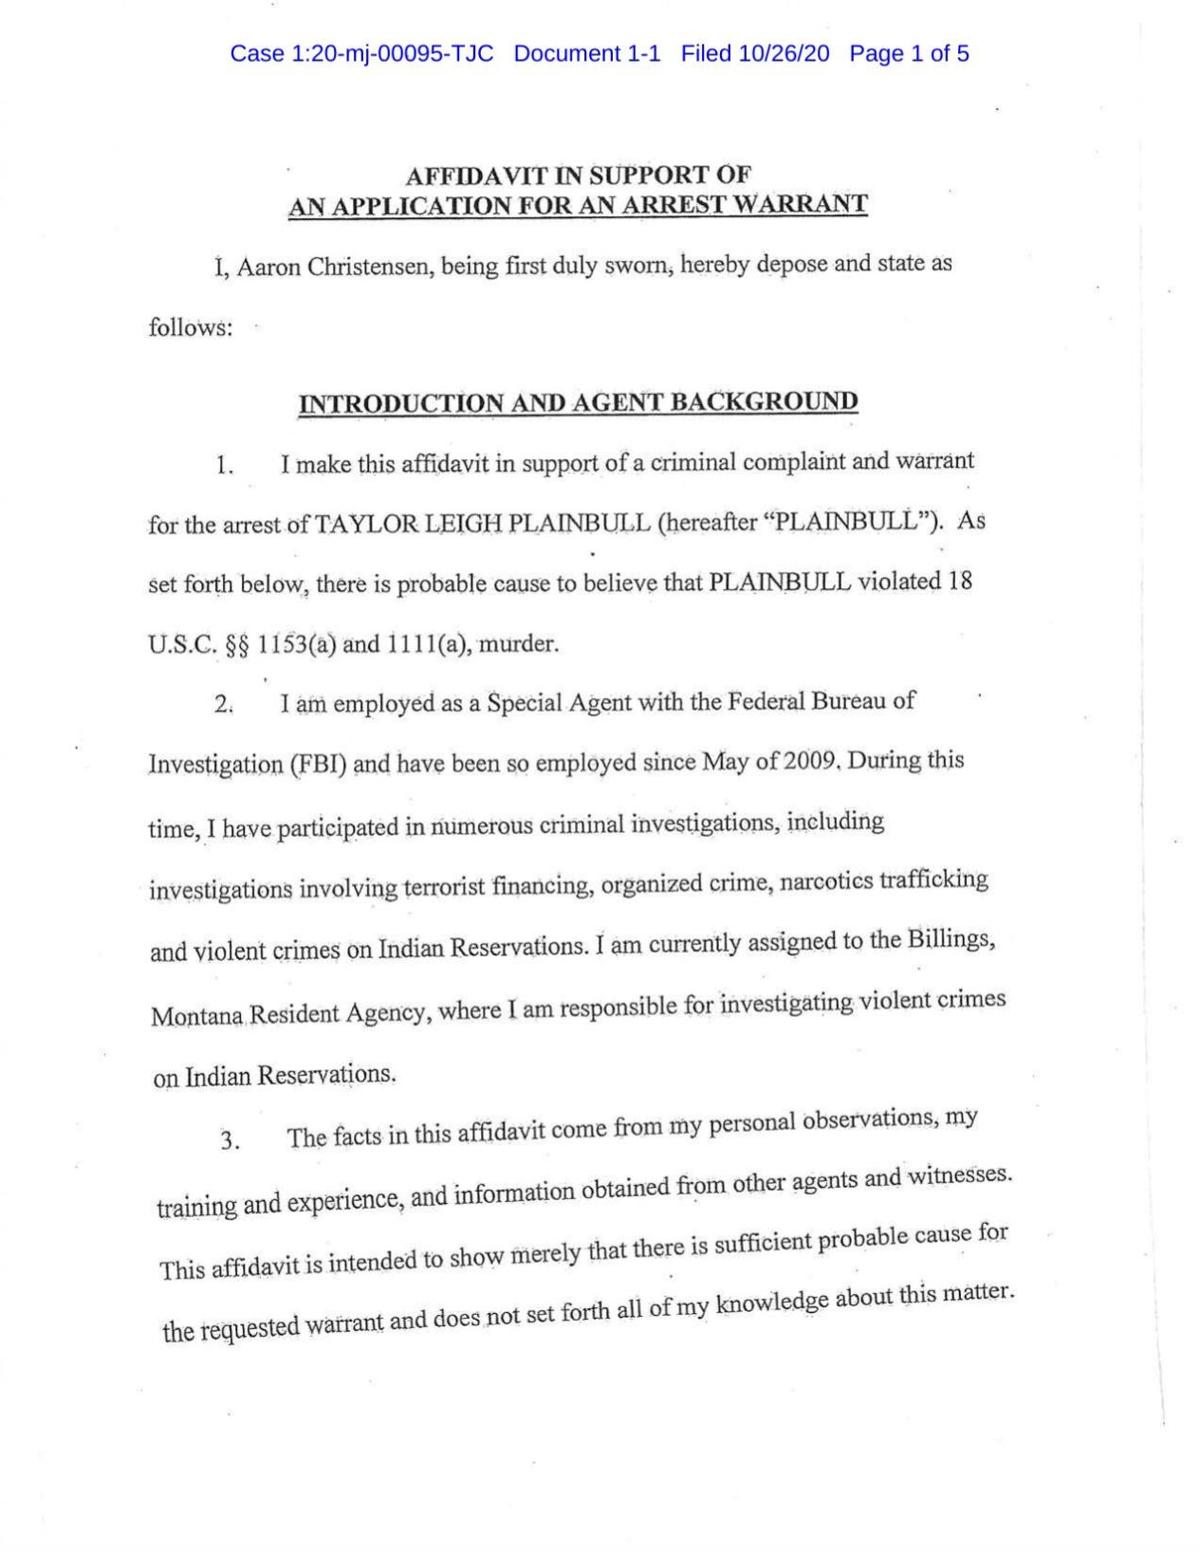 Affidavit against Taylor Leigh Plainbull